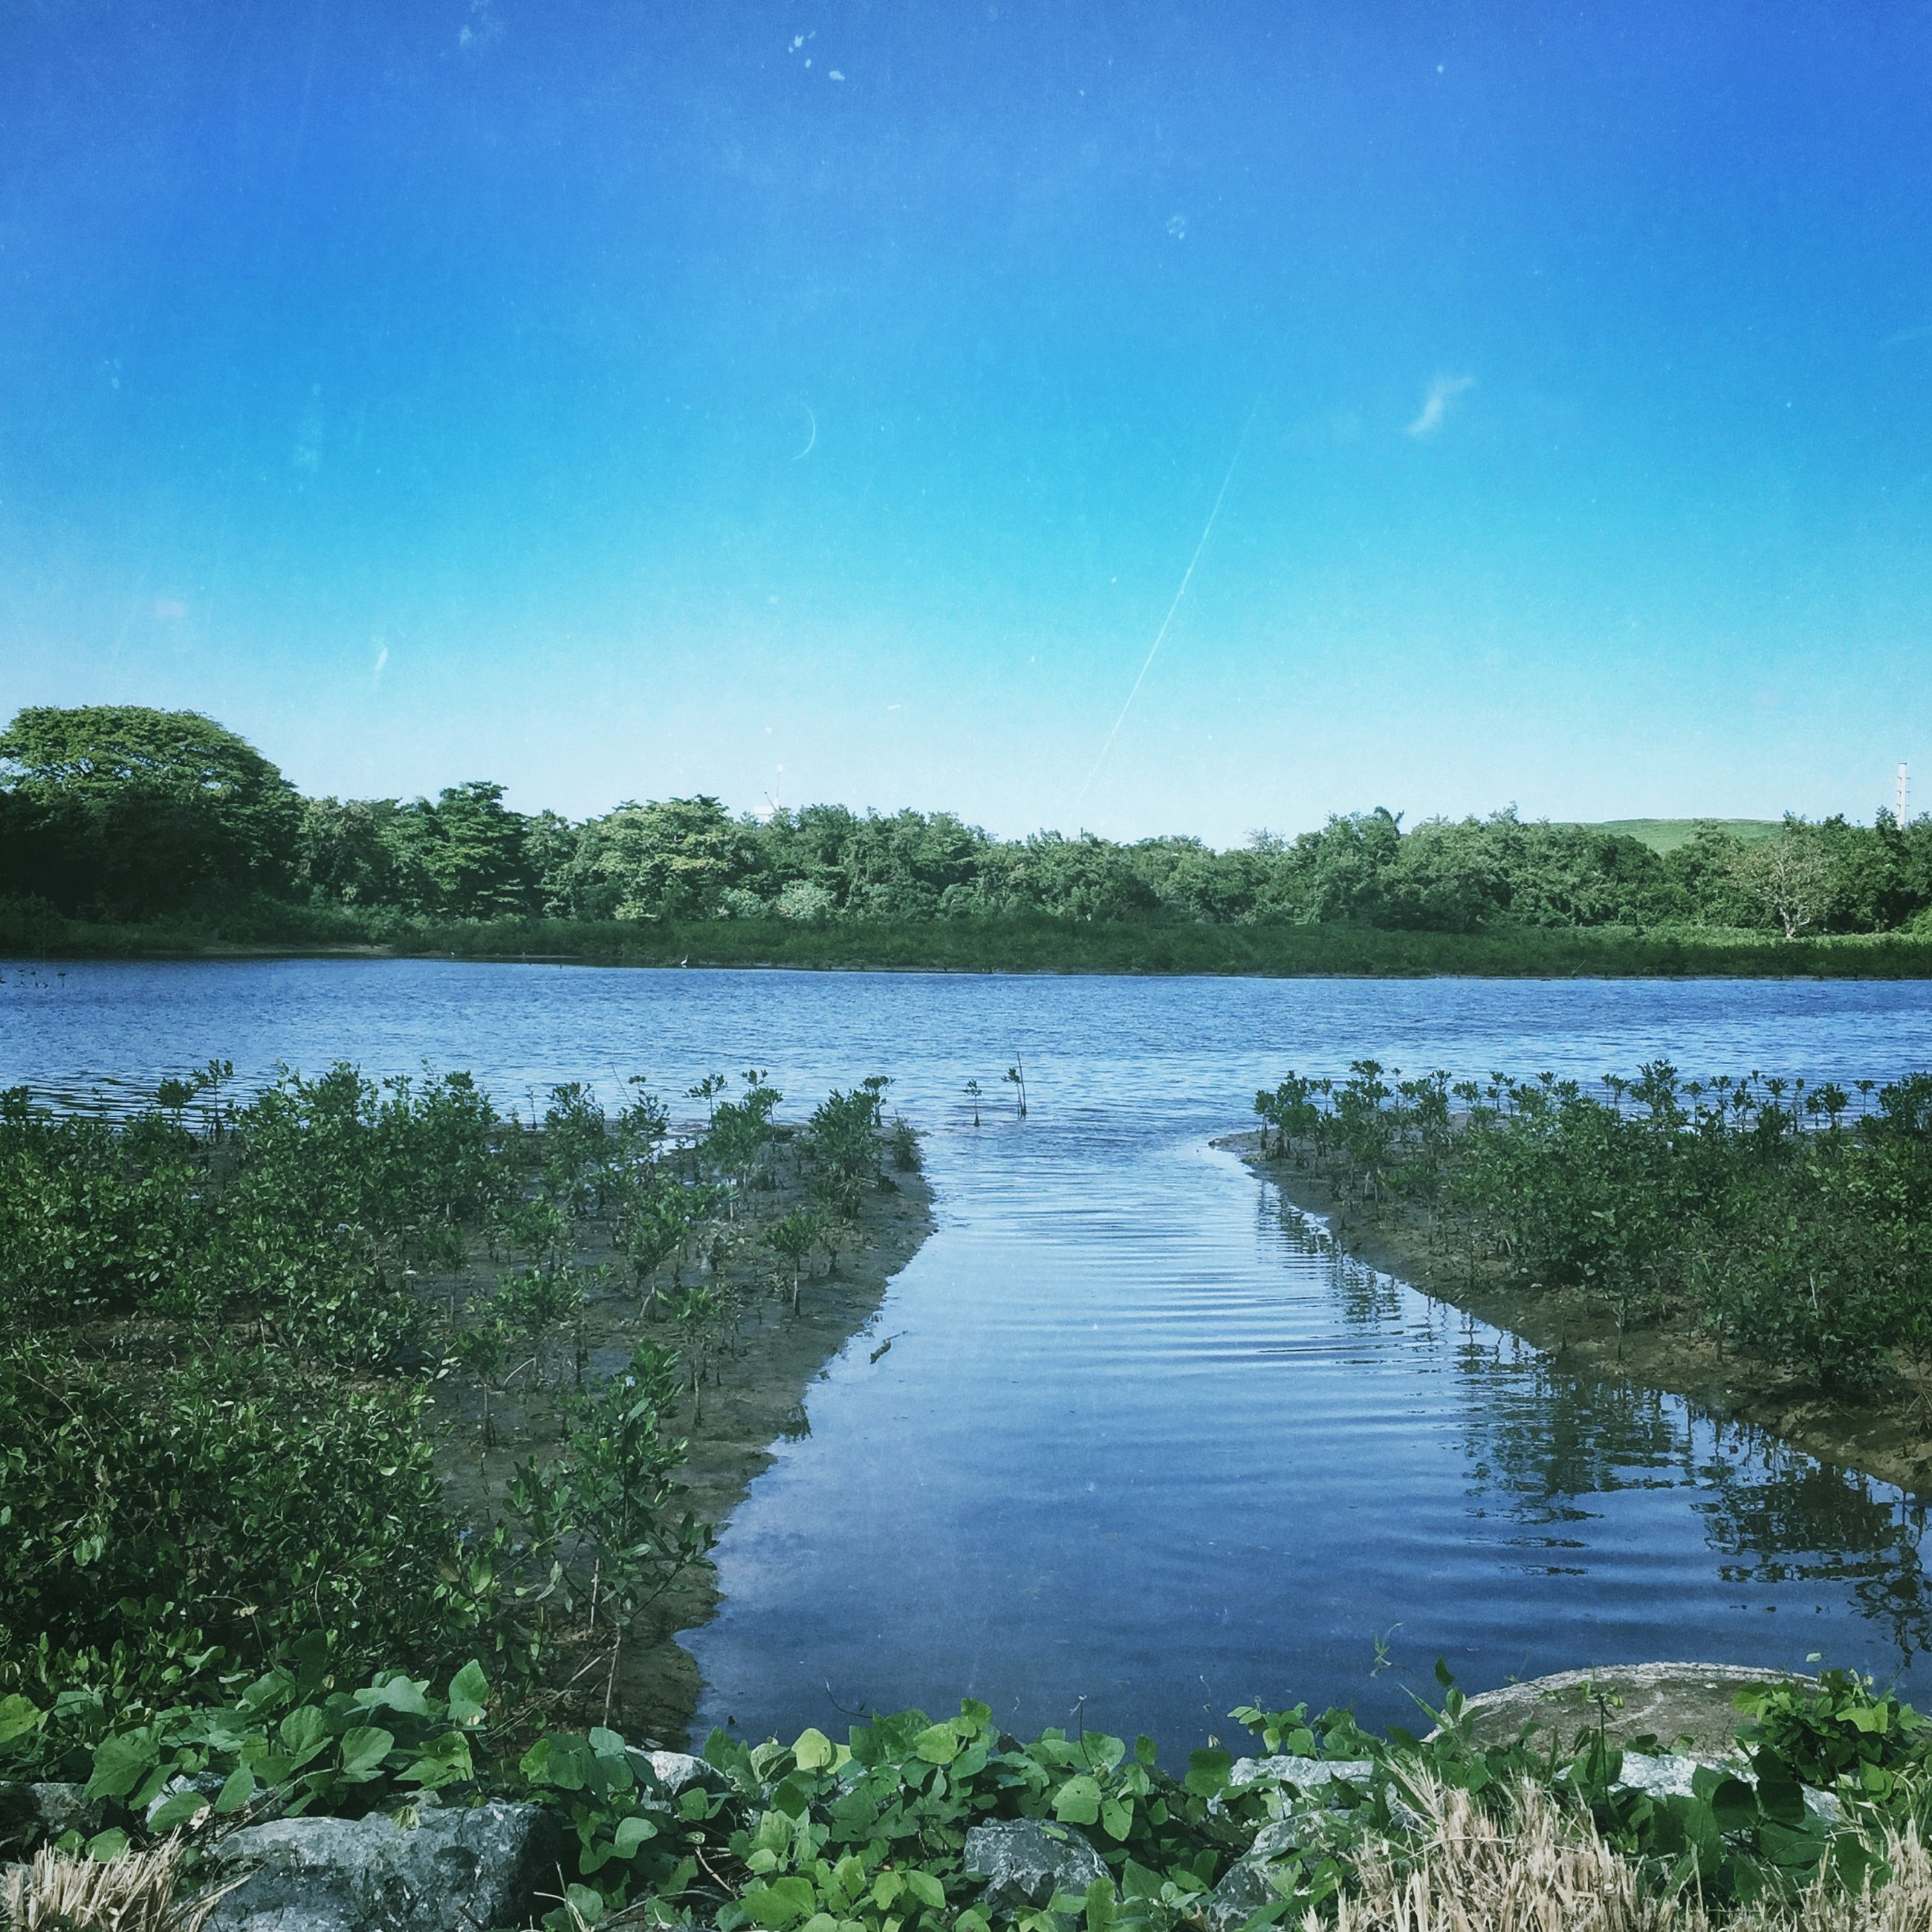 water, blue, tranquility, tranquil scene, tree, clear sky, scenics, lake, beauty in nature, reflection, nature, sky, copy space, growth, idyllic, plant, grass, river, day, non-urban scene